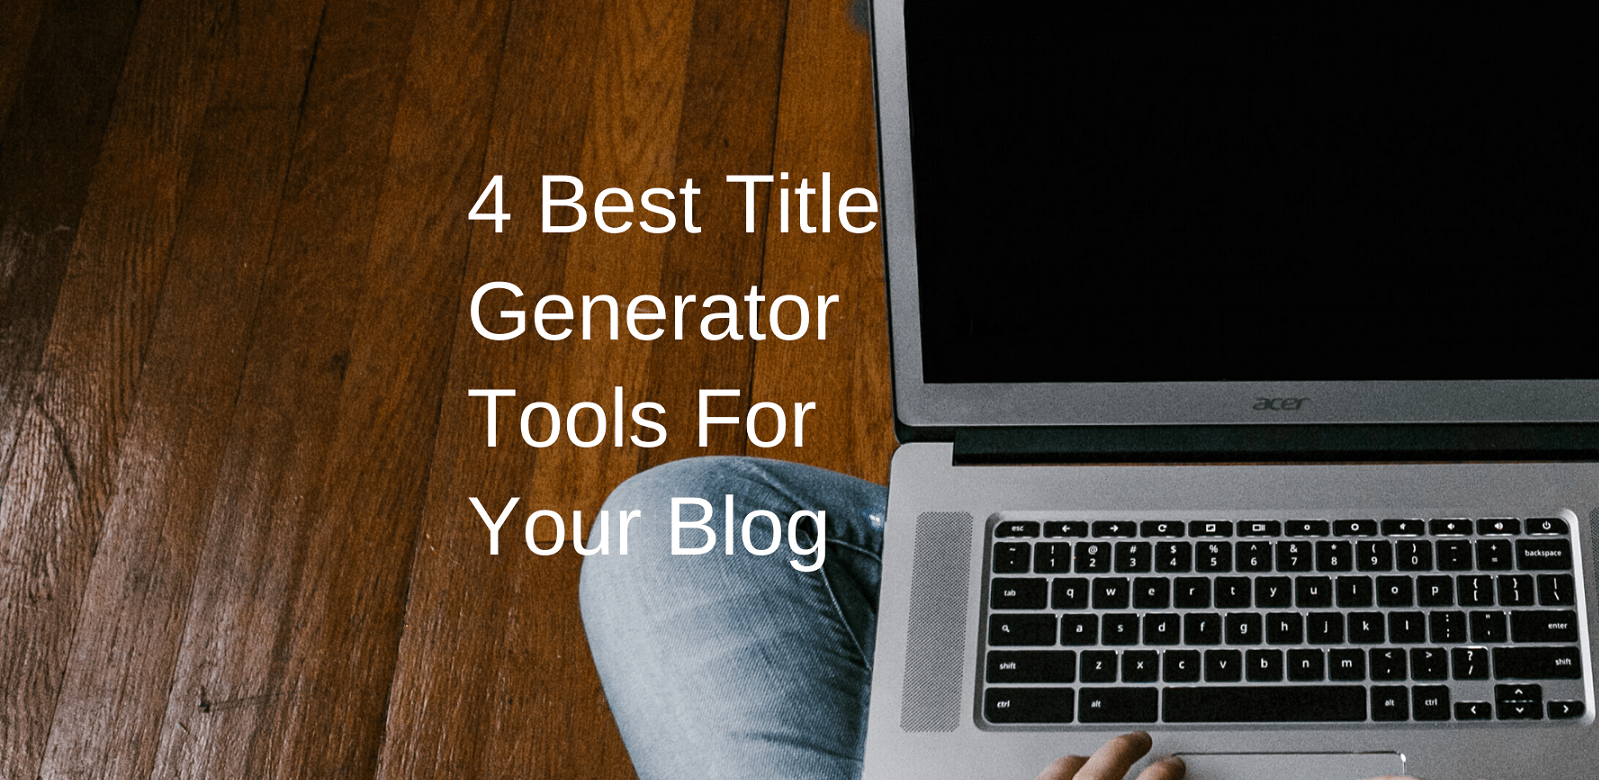 4 Best Title Generator Tools For Your Blog